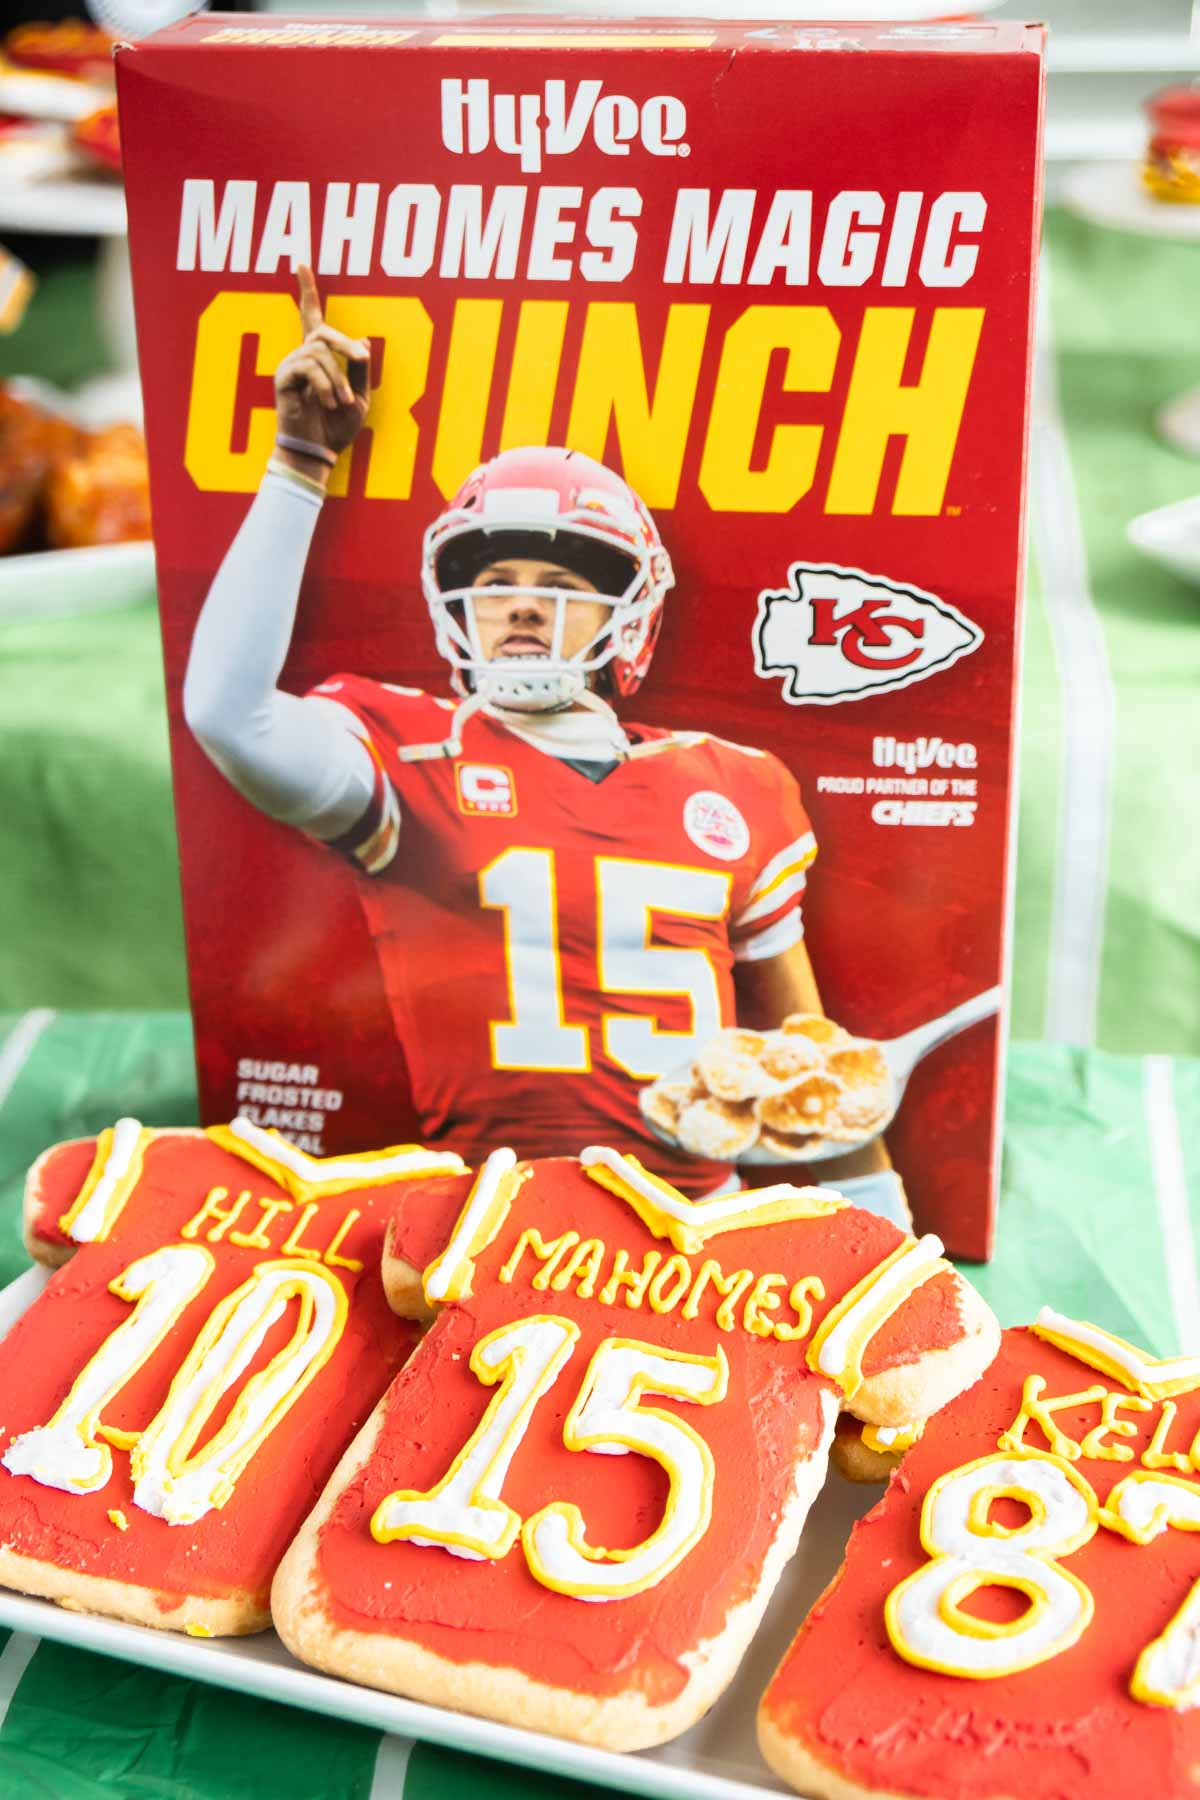 Chiefs cookies and Mahomes cereal